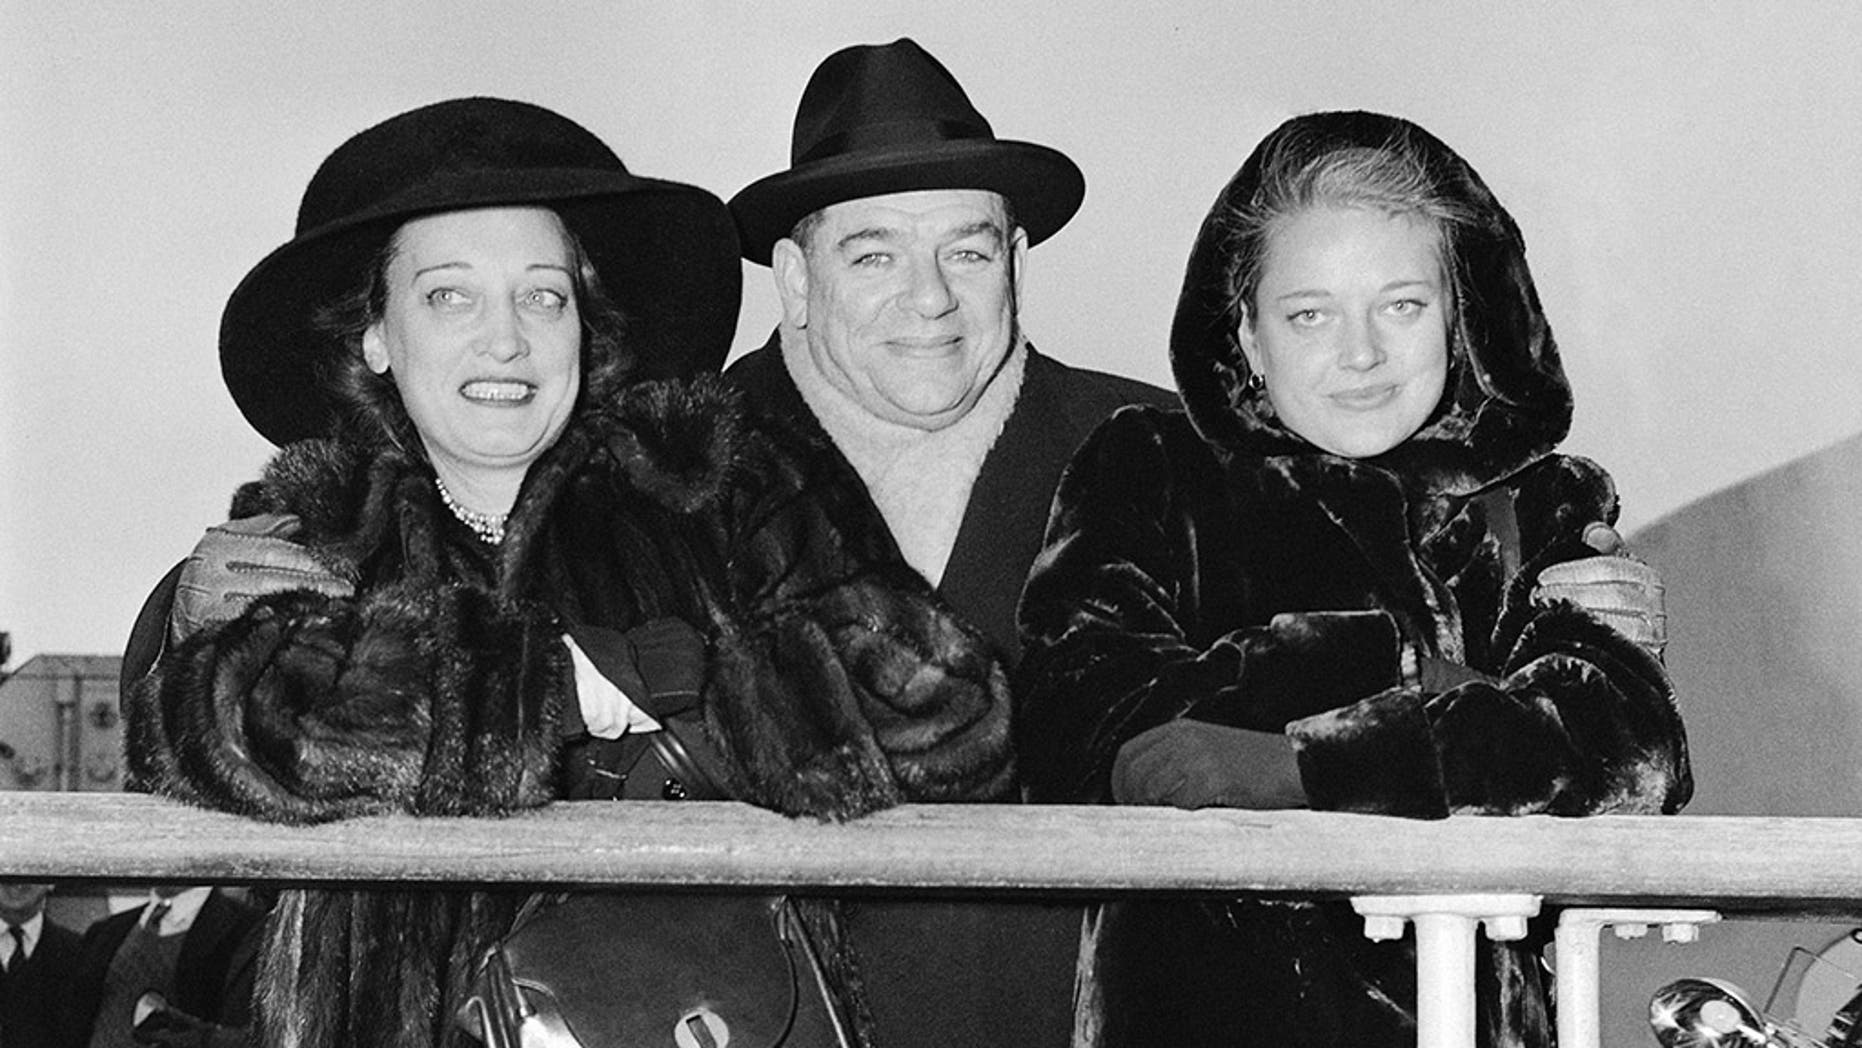 FILE -- Oscar Hammerstein, playwright and producer, his wife Dorothy, and daughter Susan Blanchard, arrive in New York, Dec. 15, 1947, aboard the liner Mauritania from Europe.